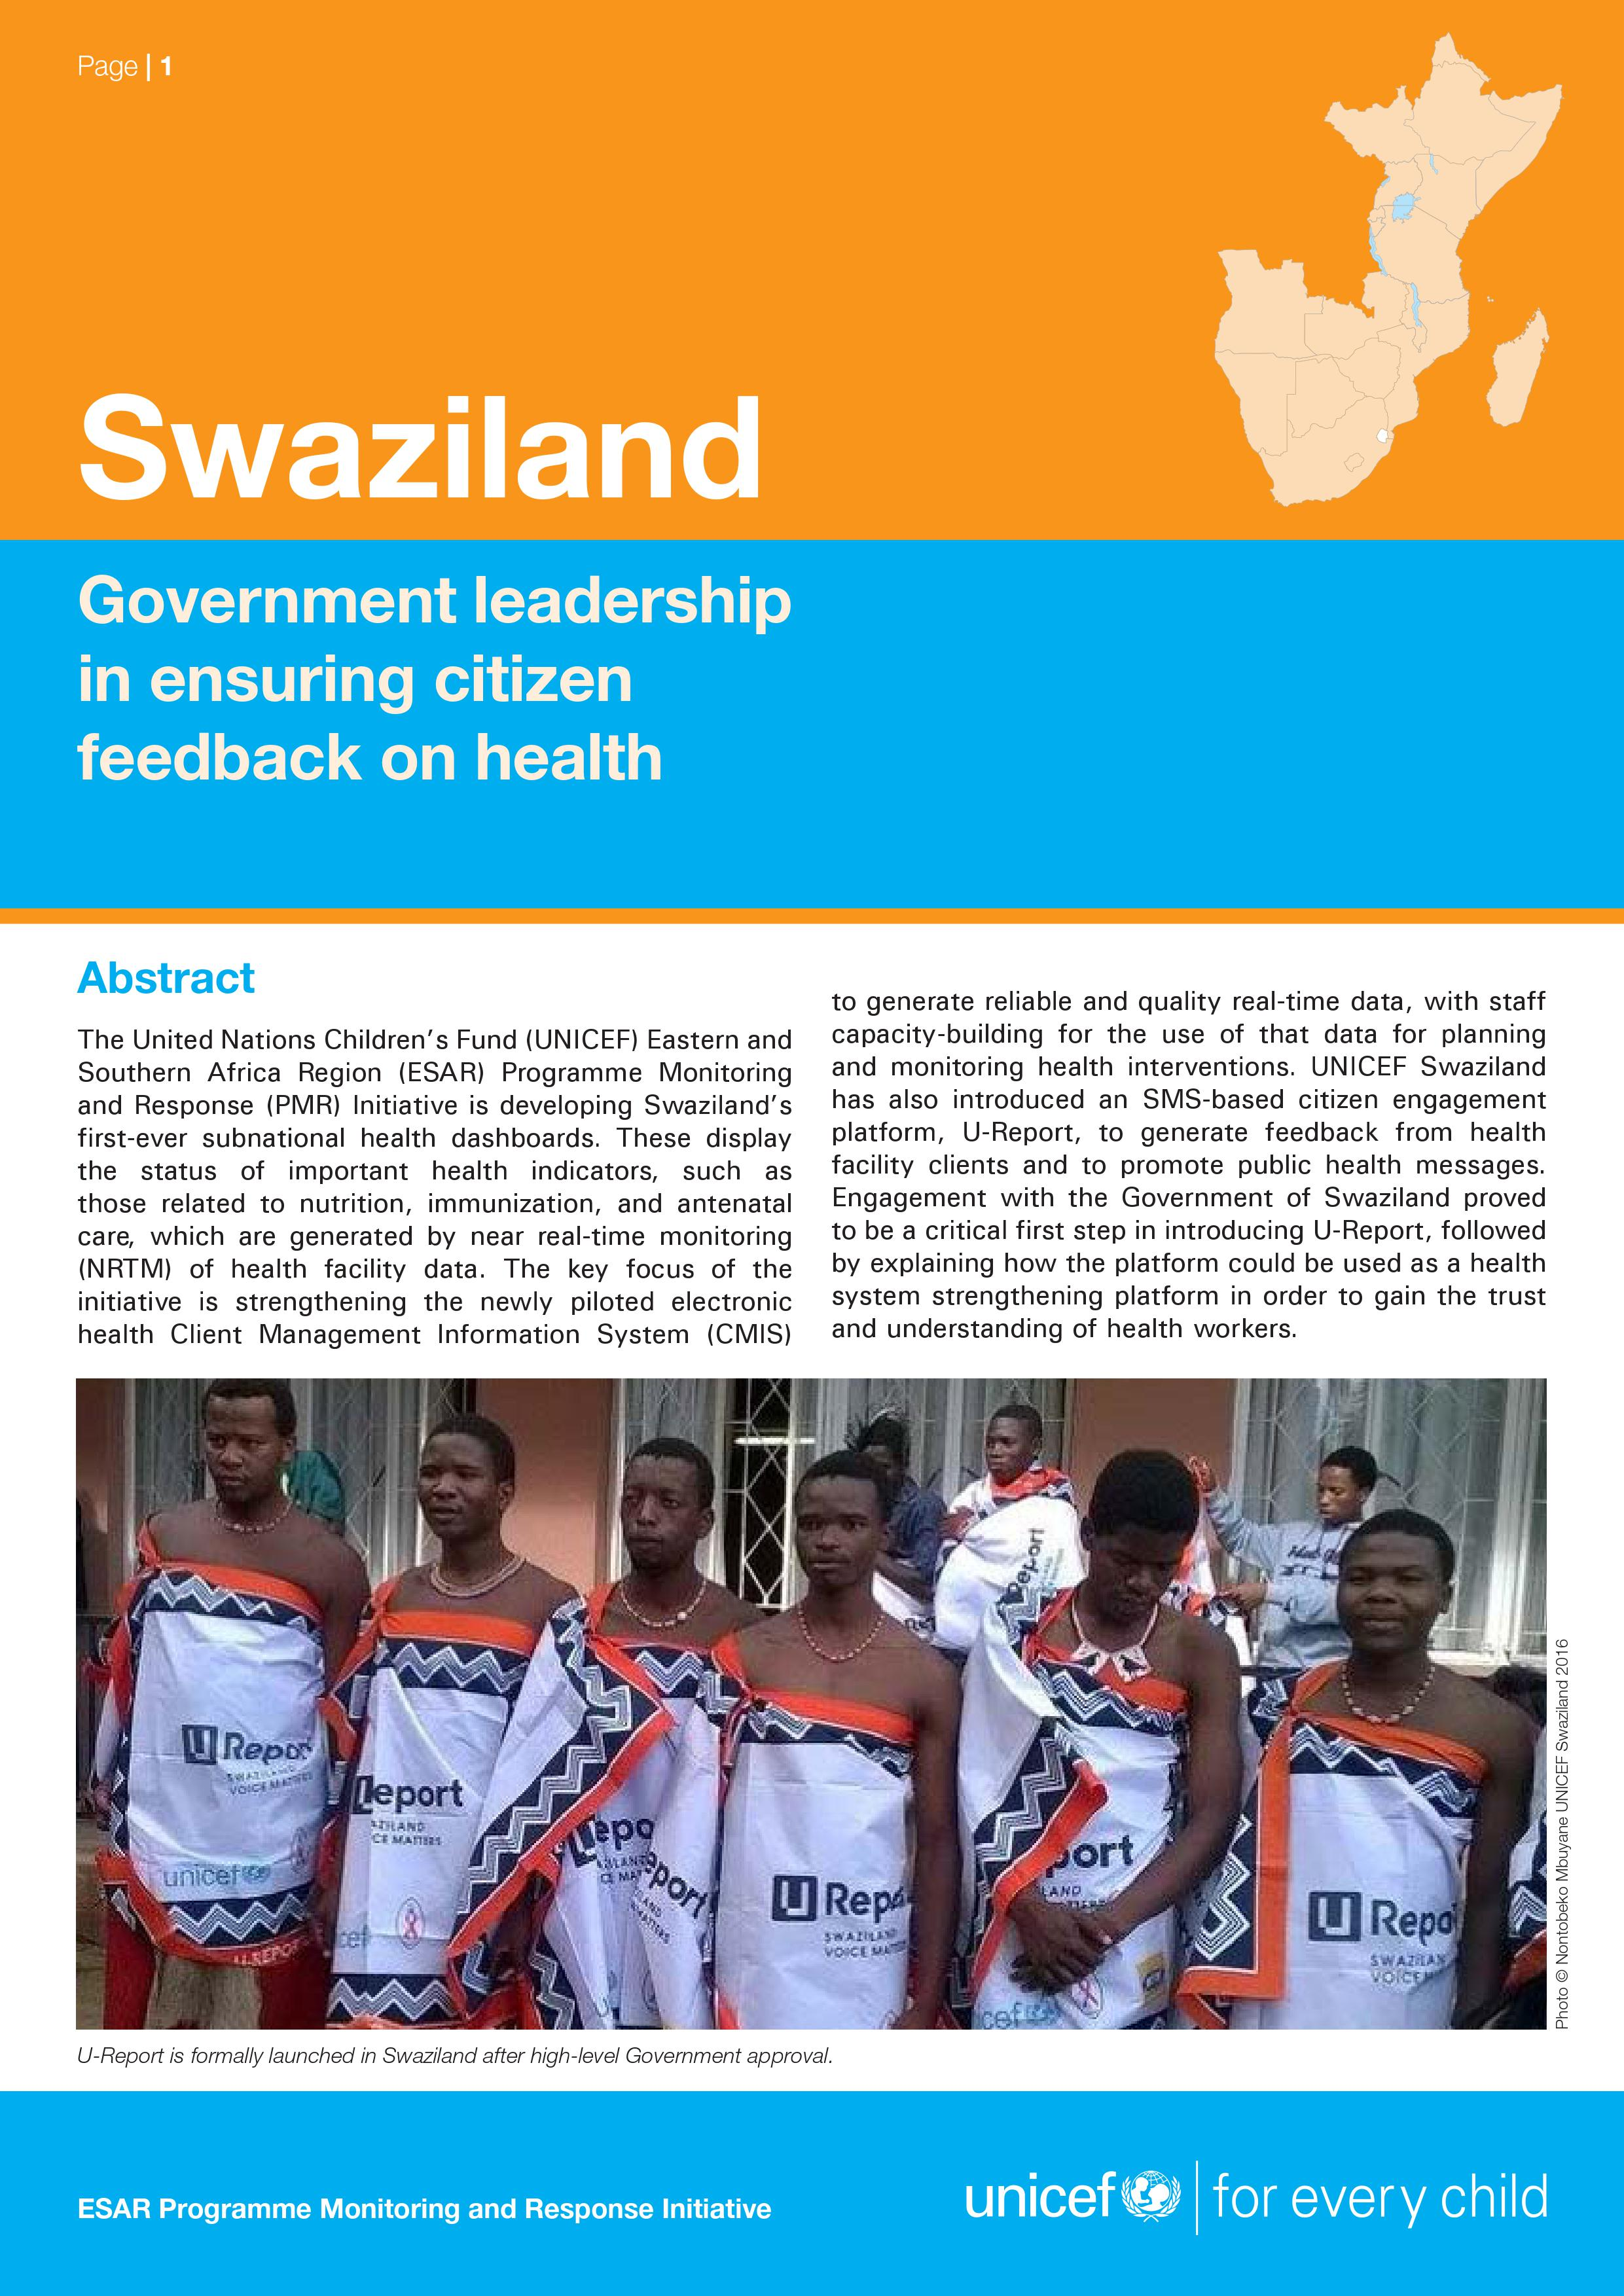 Case Study- Eswatini: Government leadership in ensuring citizen feedback on health